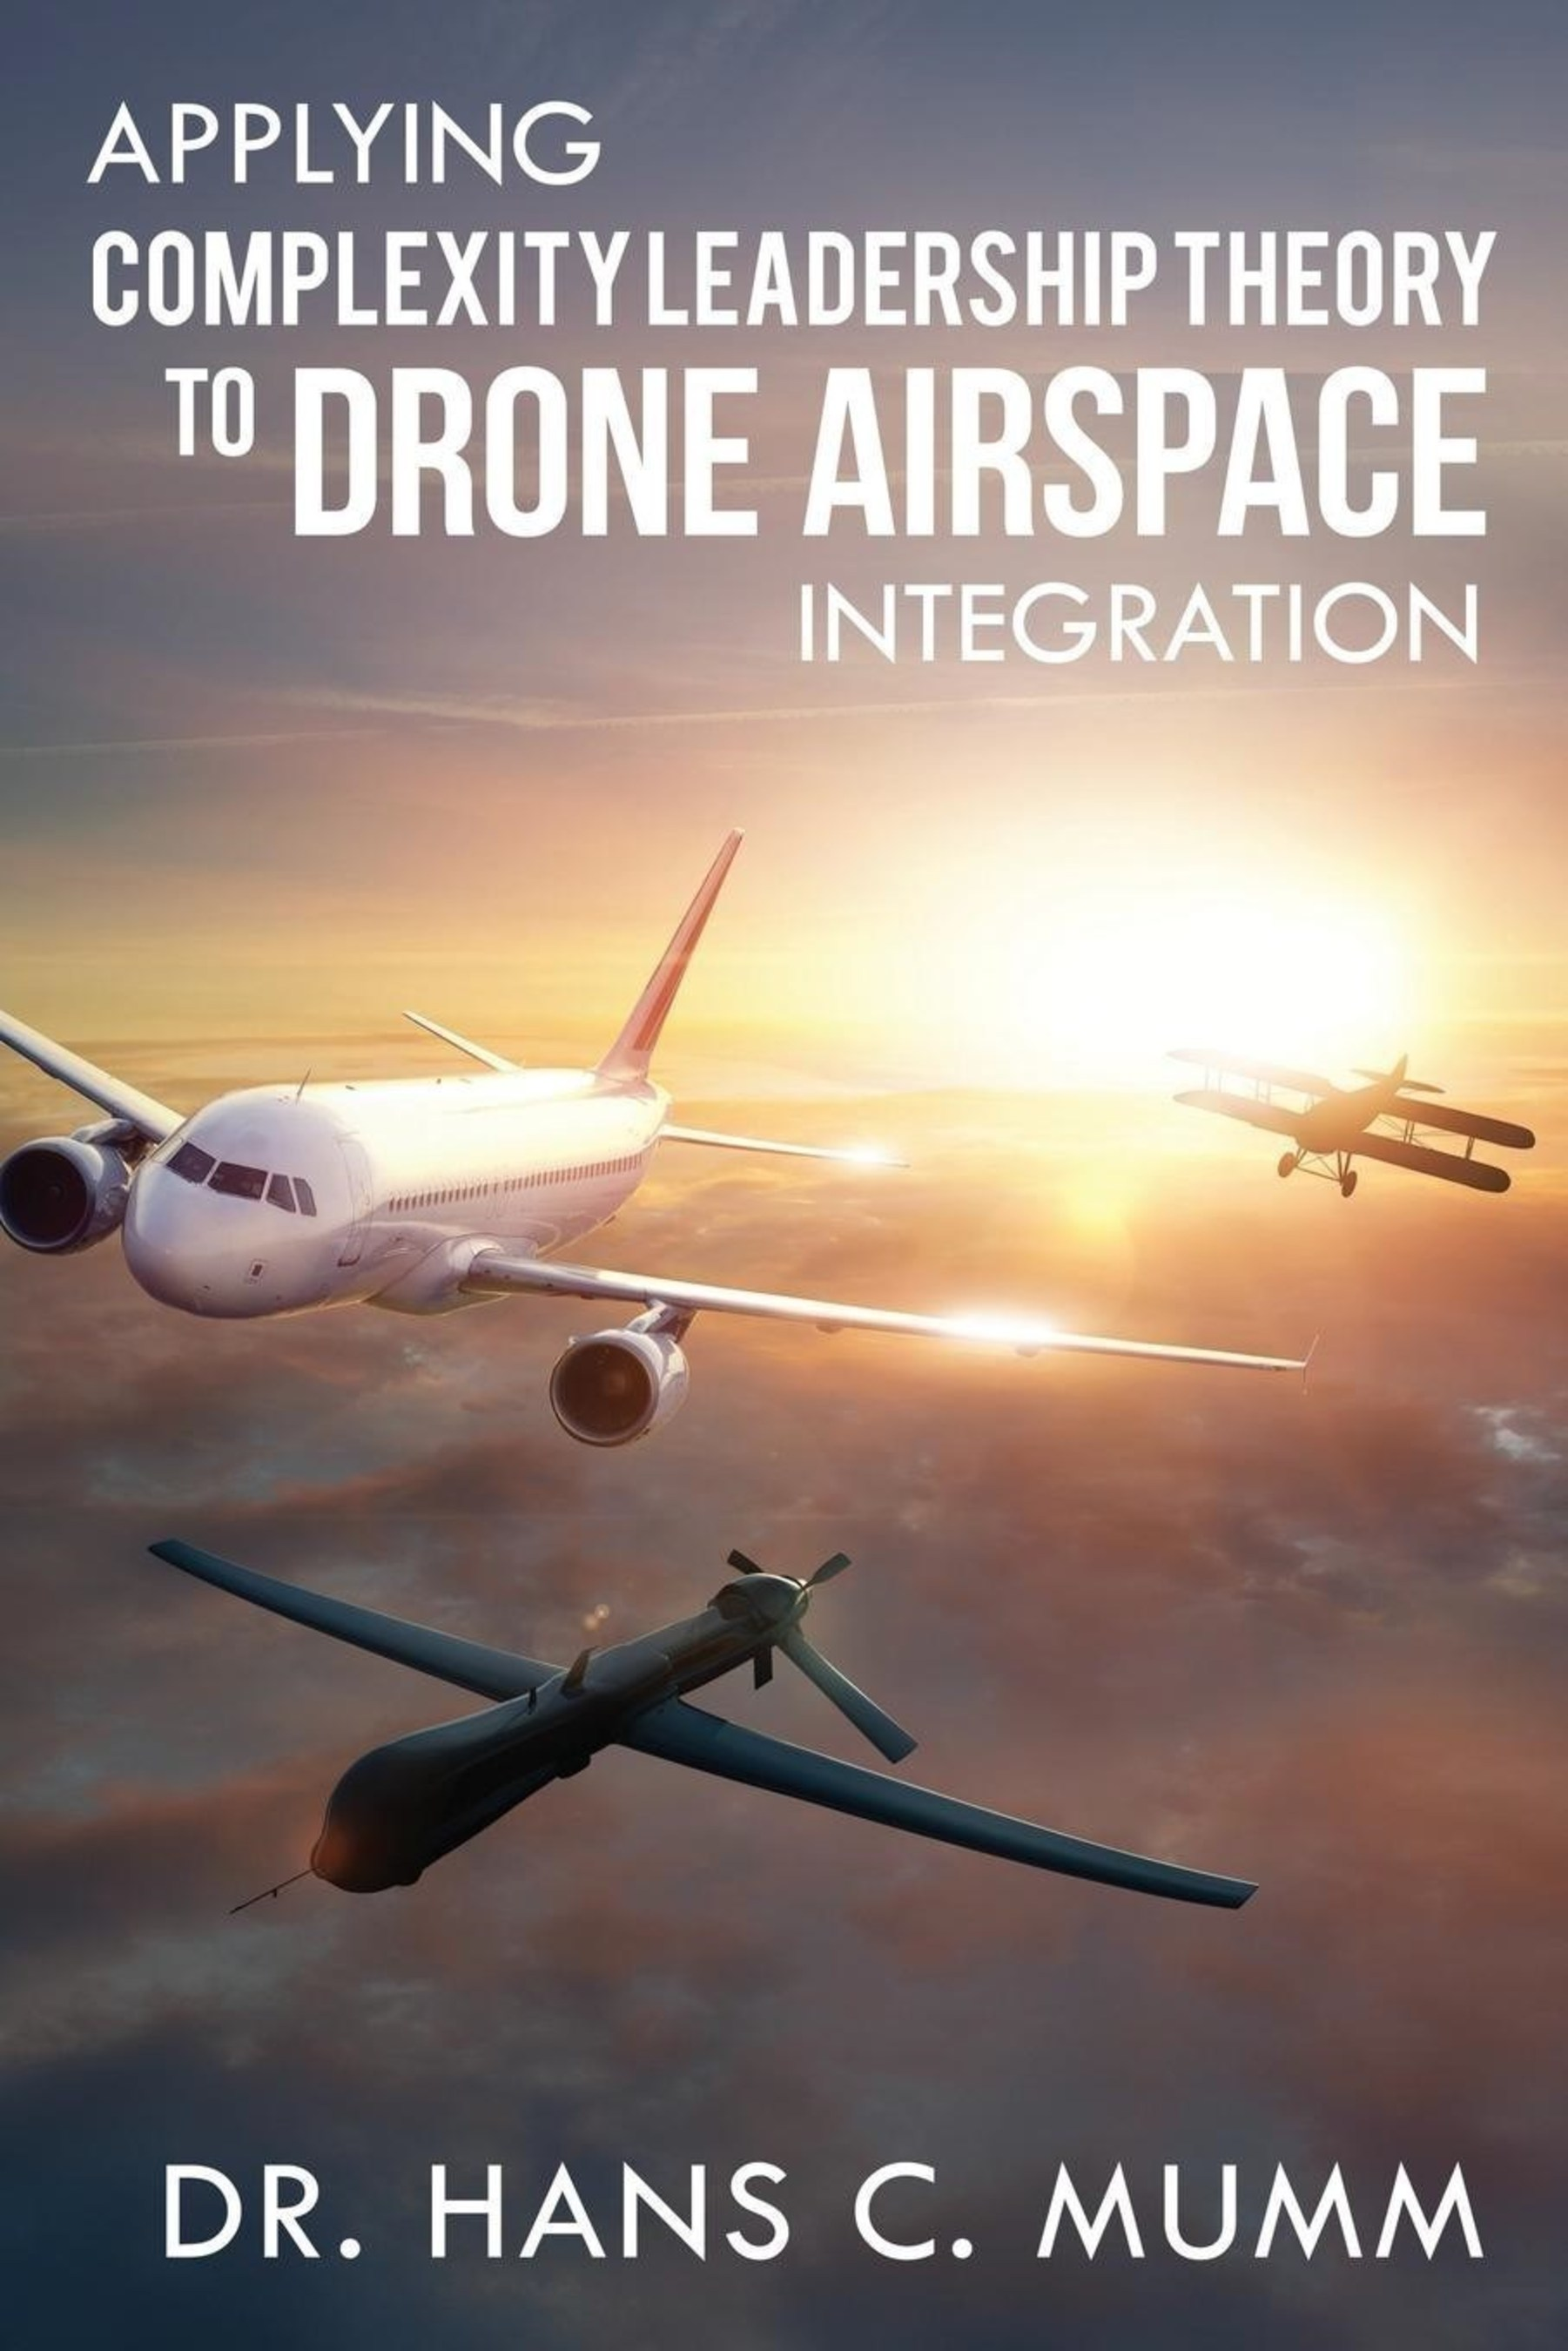 Dr. Hans C. Mumm Announces Book Release: 'Applying Complexity Leadership Theory to Drone Airspace